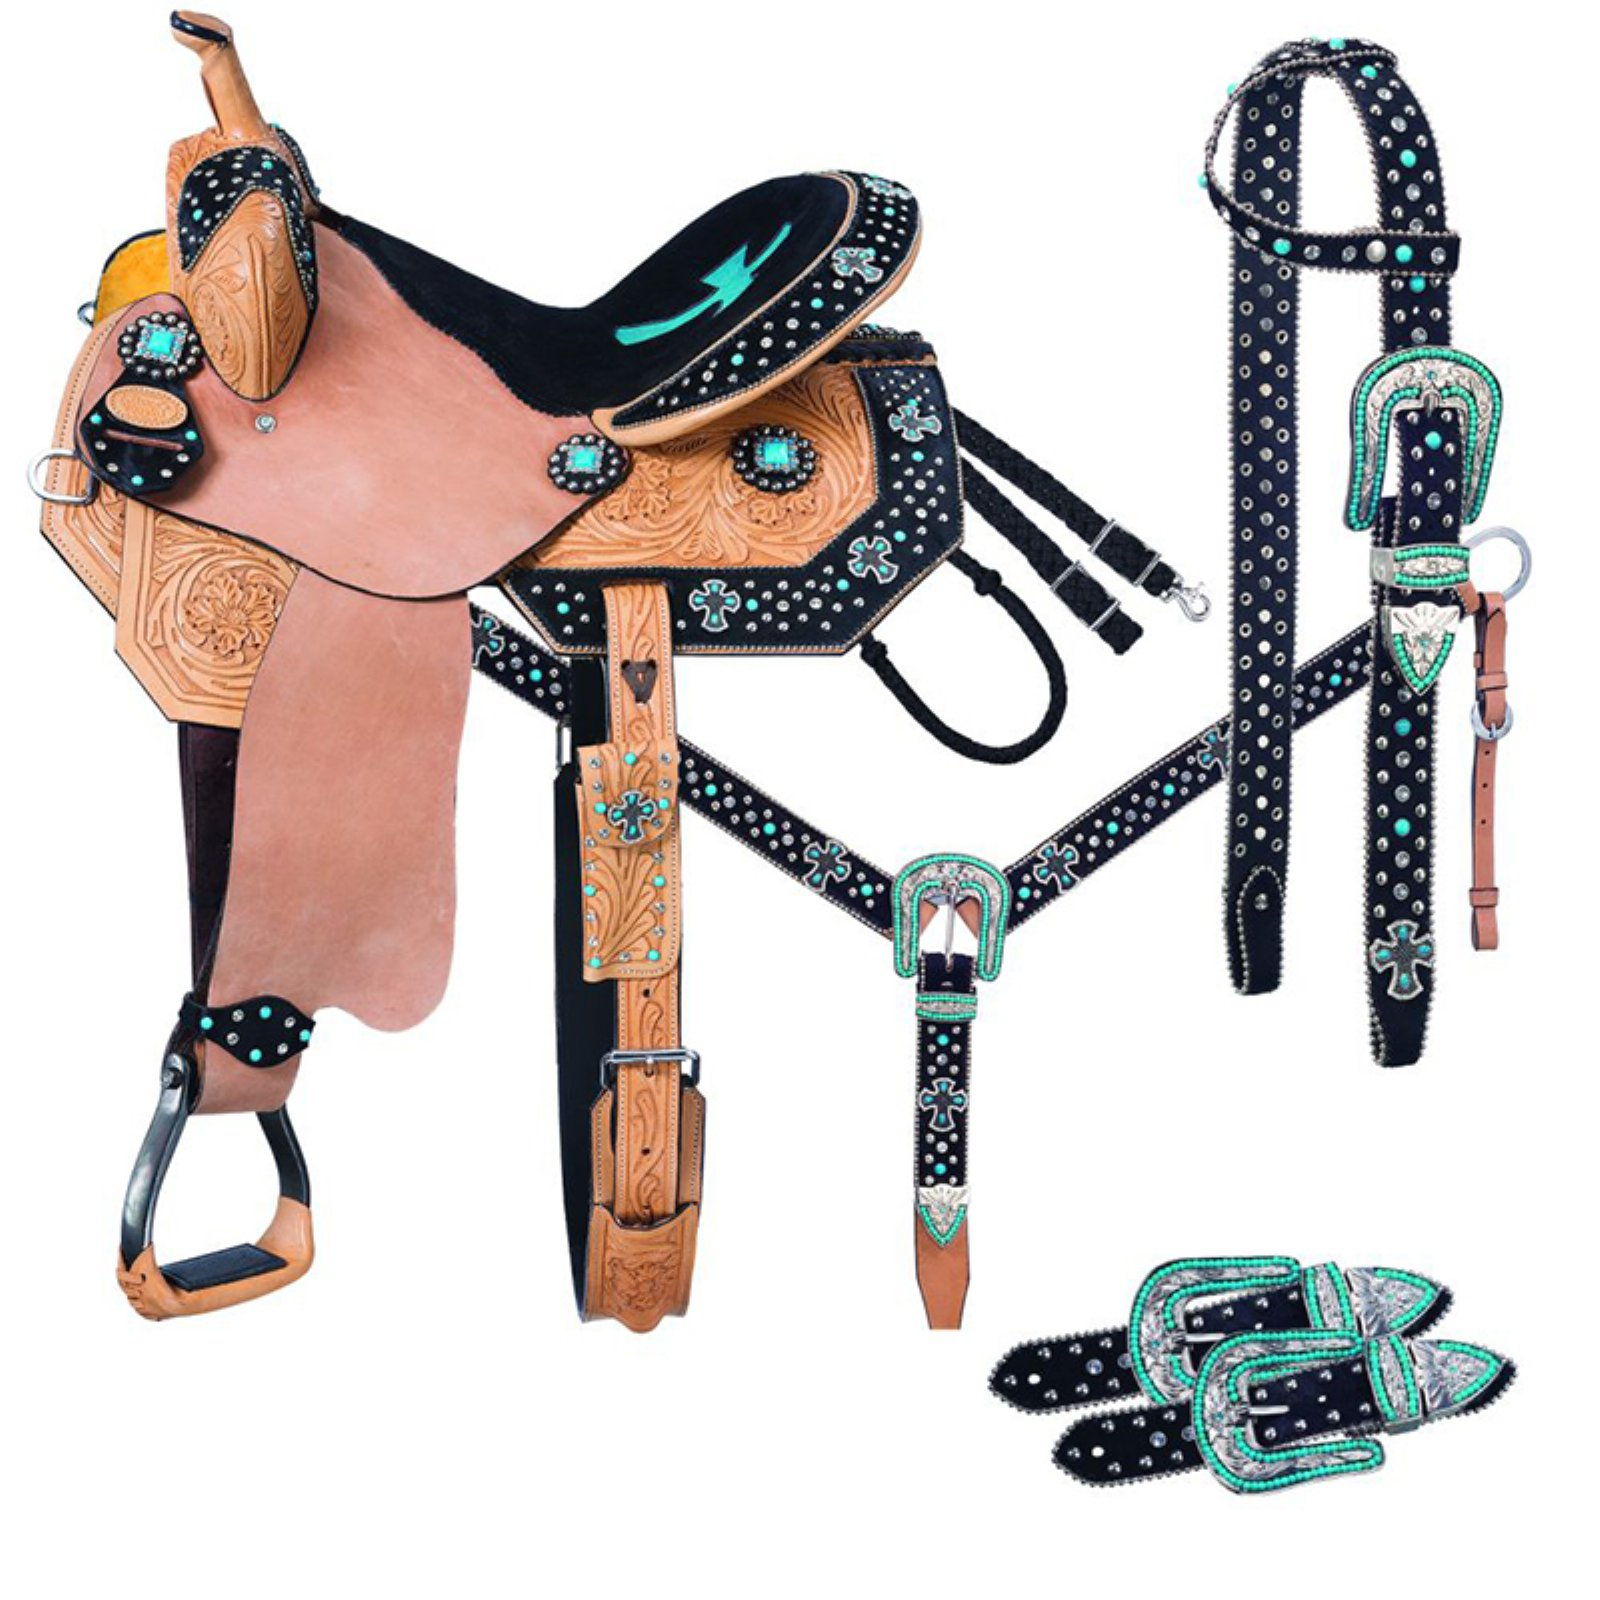 Cheyenne Barrel 5 Piece Horse Saddle Package